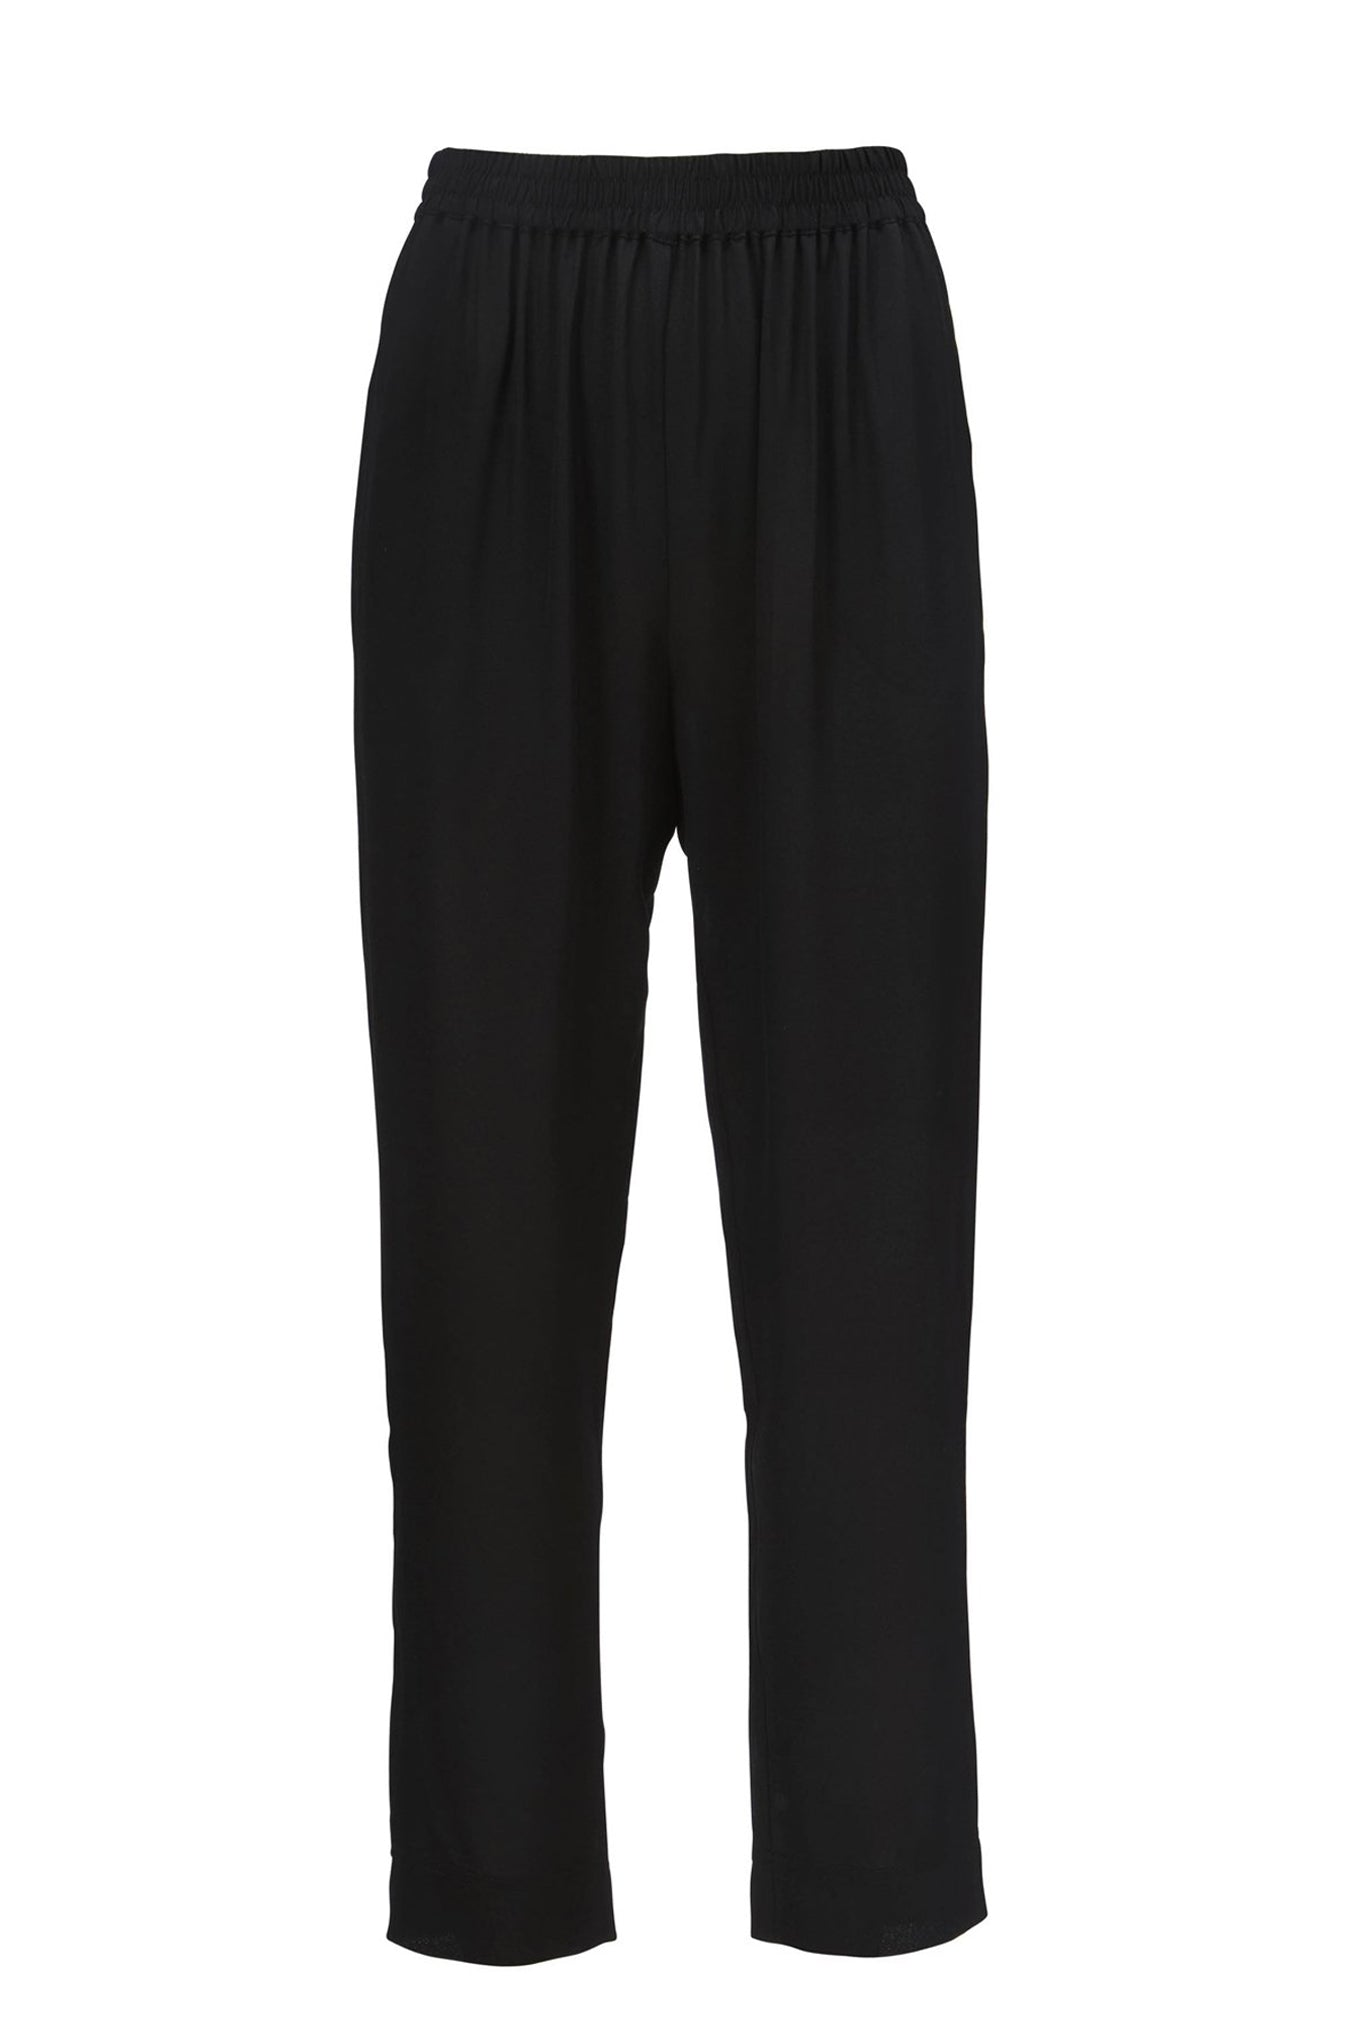 PY PANTS - BLACK